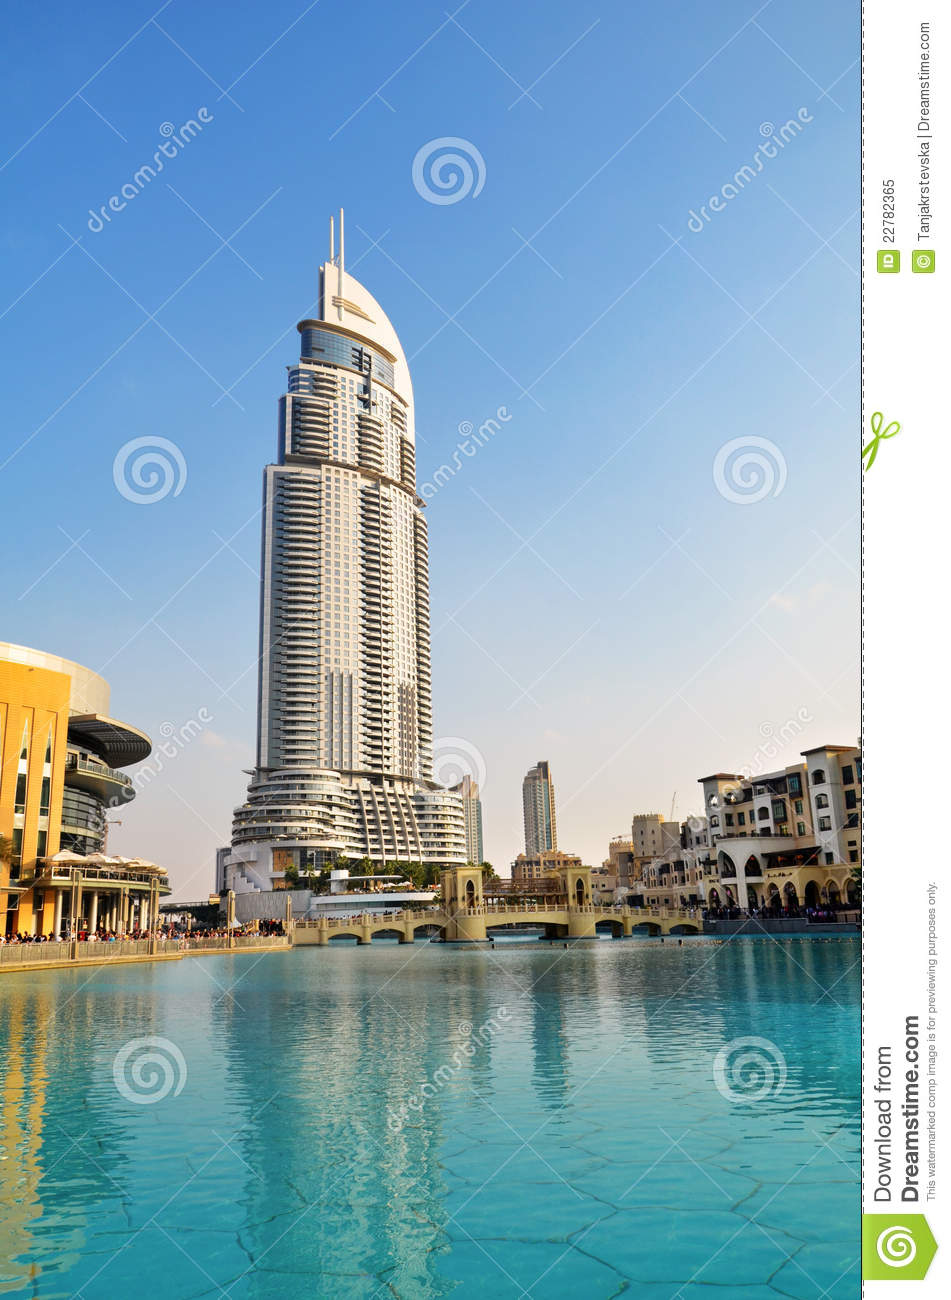 Address hotel and lake burj dubai dubai editorial image for List of hotels in dubai with contact details